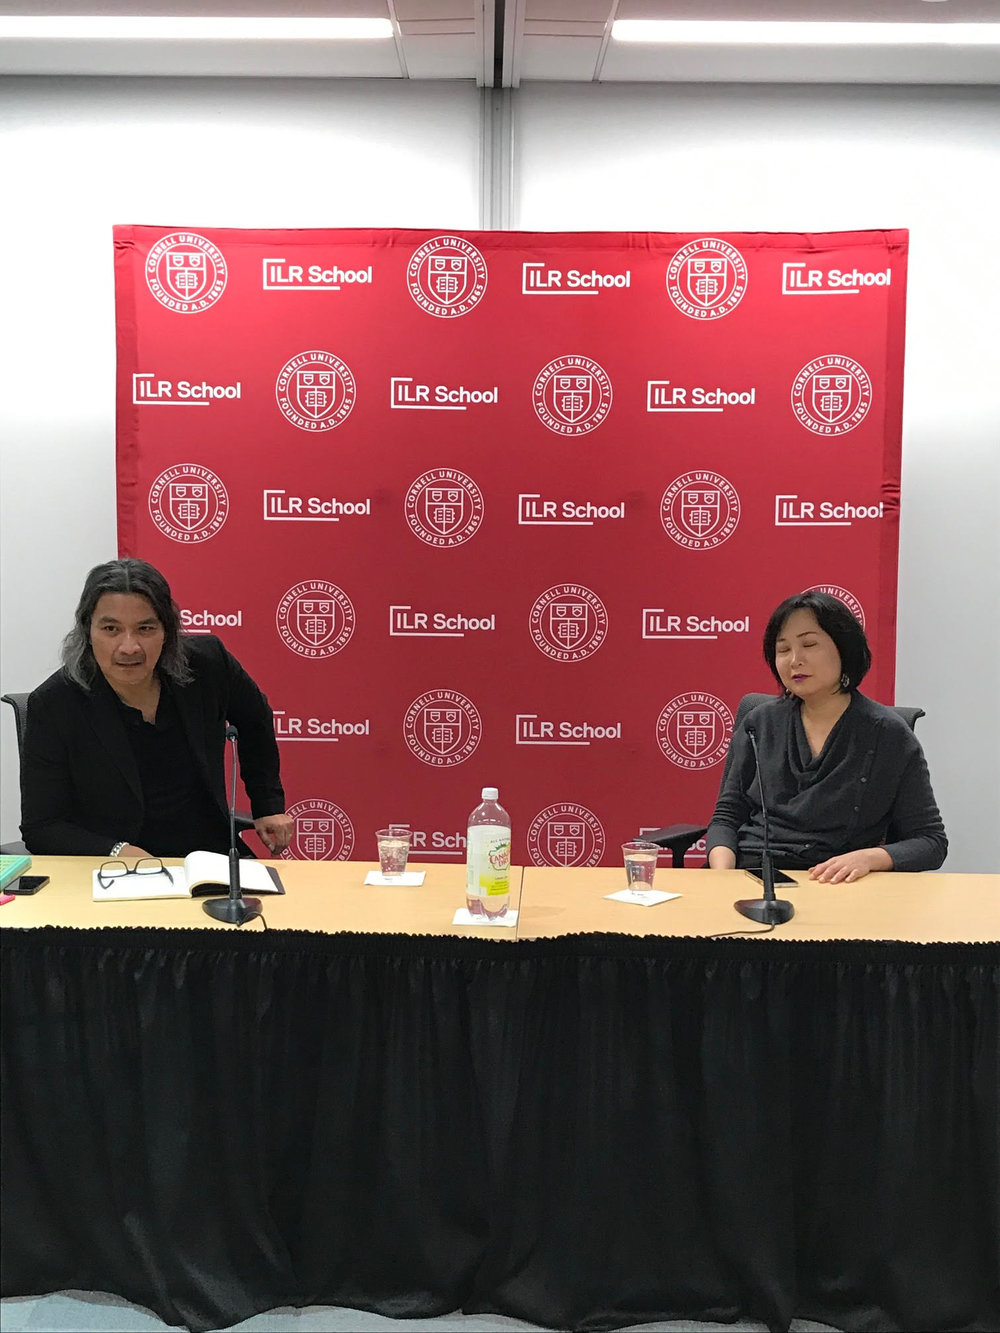 Joan Kee in conversation with Sergio Muñoz Sarmiento to celebrate the launch of  Models of Integrity: Art and Law in Post-Sixties America  by Joan Kee (February 2019). This event was co-sponsored by Cornell Law School.